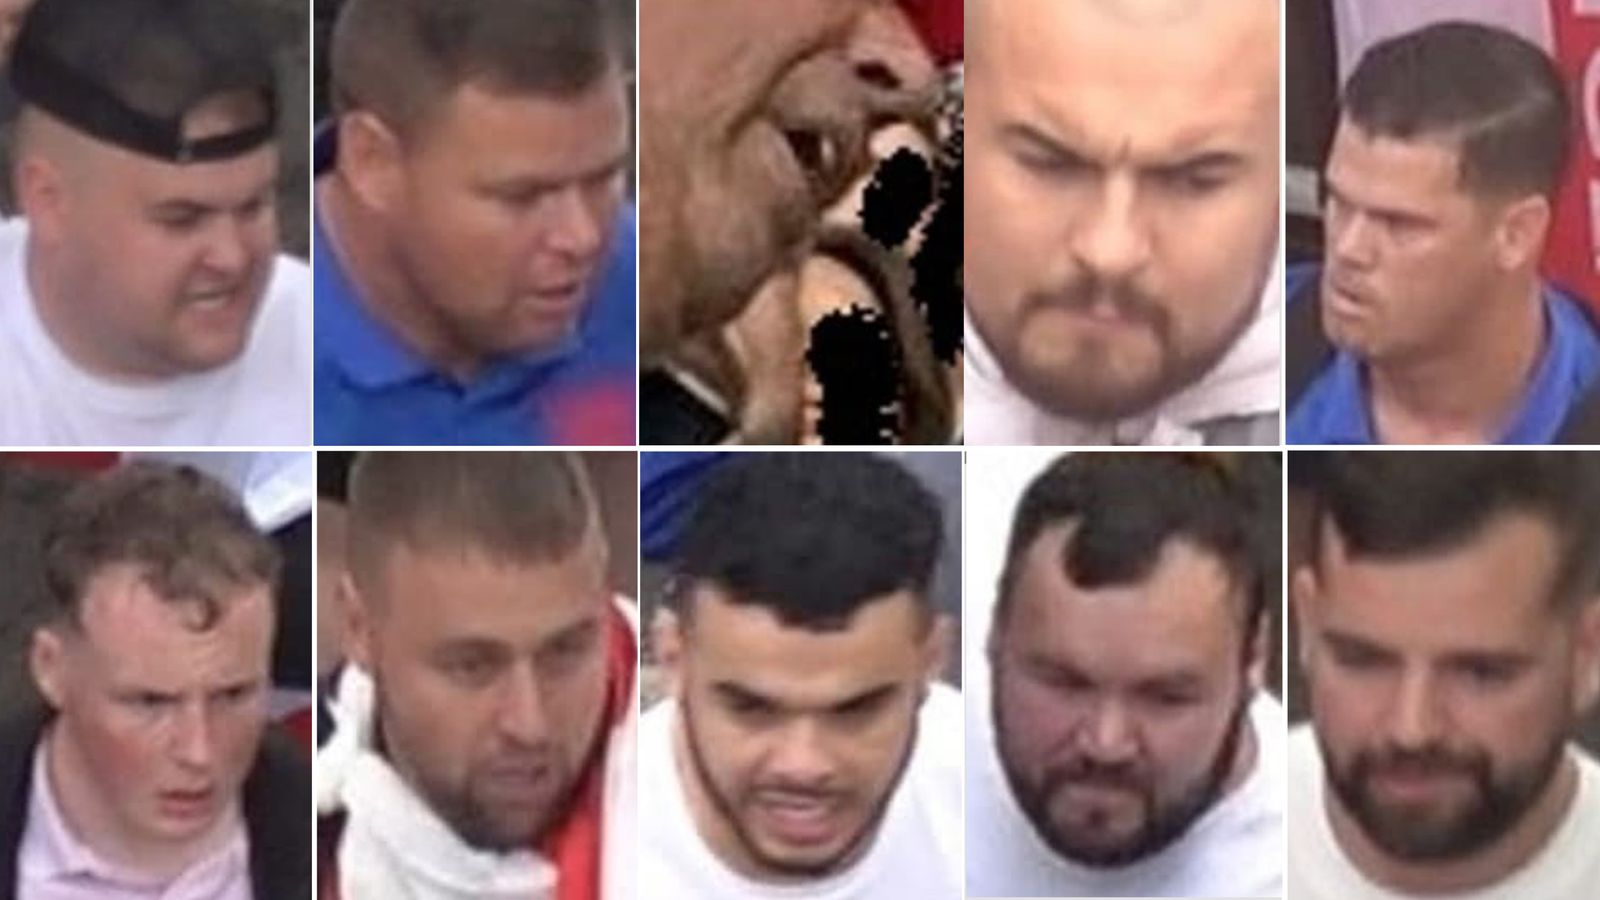 Euro 2020: Police release images of 10 men they are tracing over unrest before England v Italy final